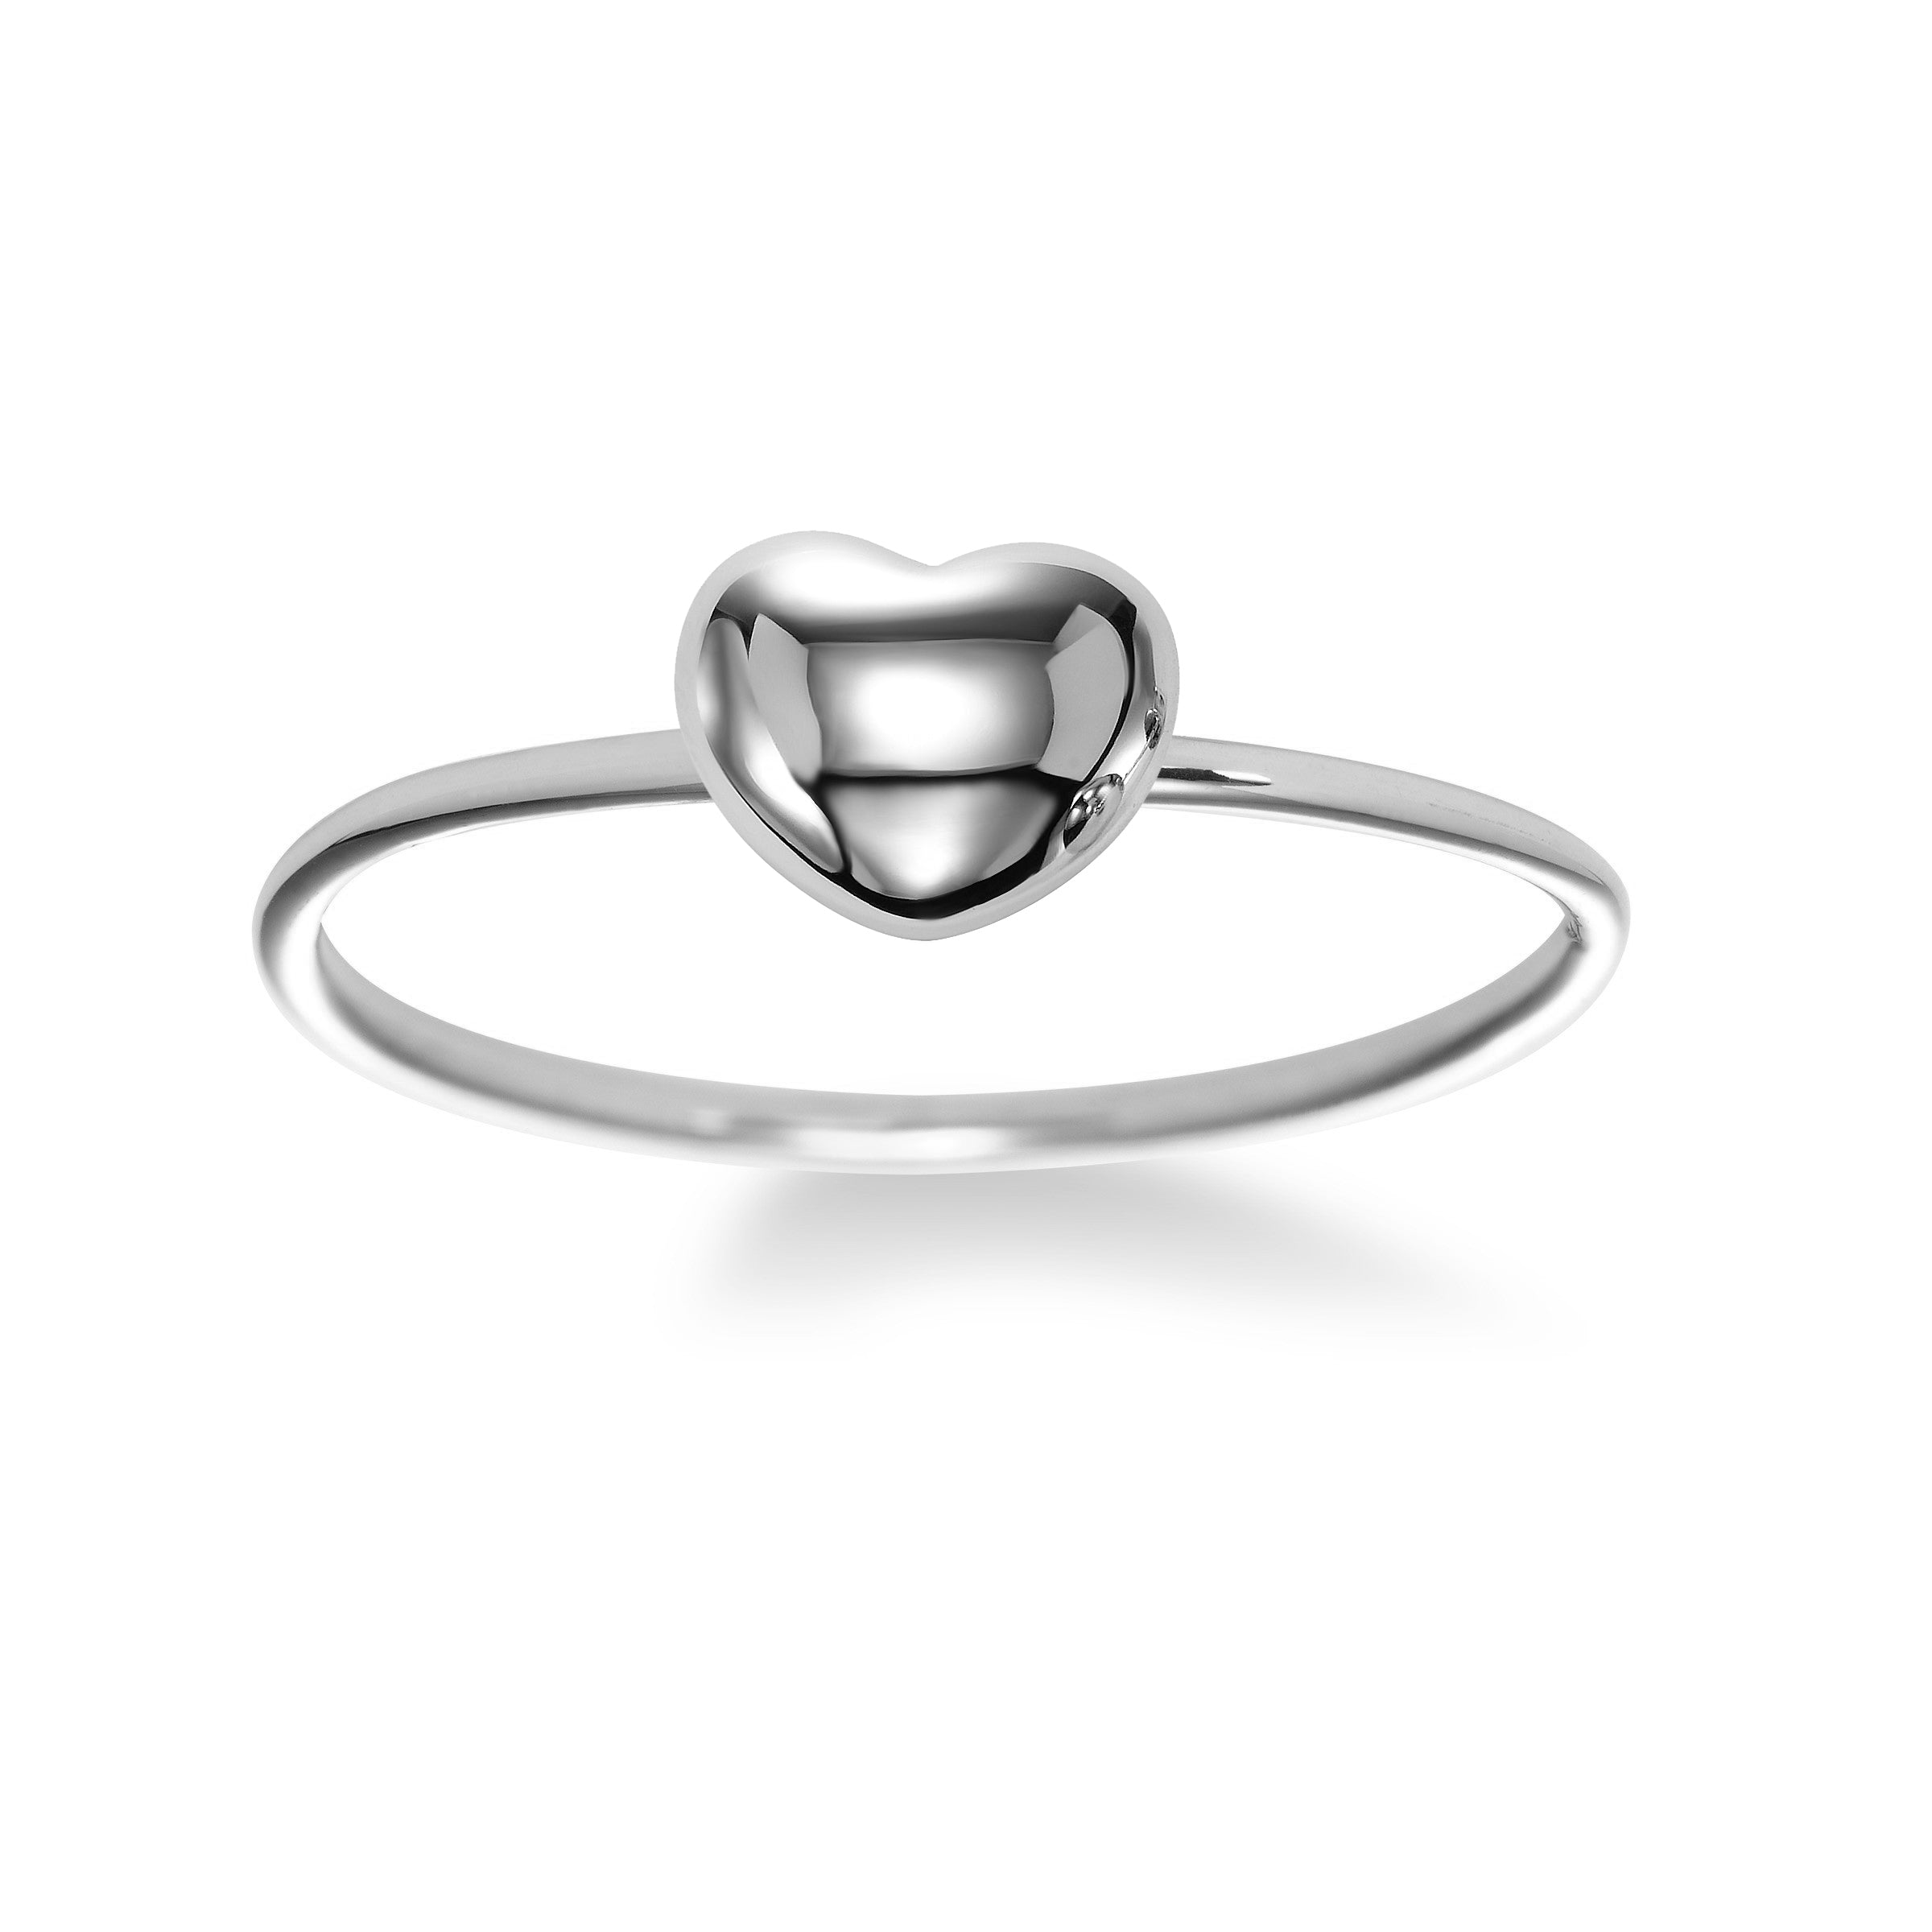 Shiny Puffed Heart Ring, 18K White Gold